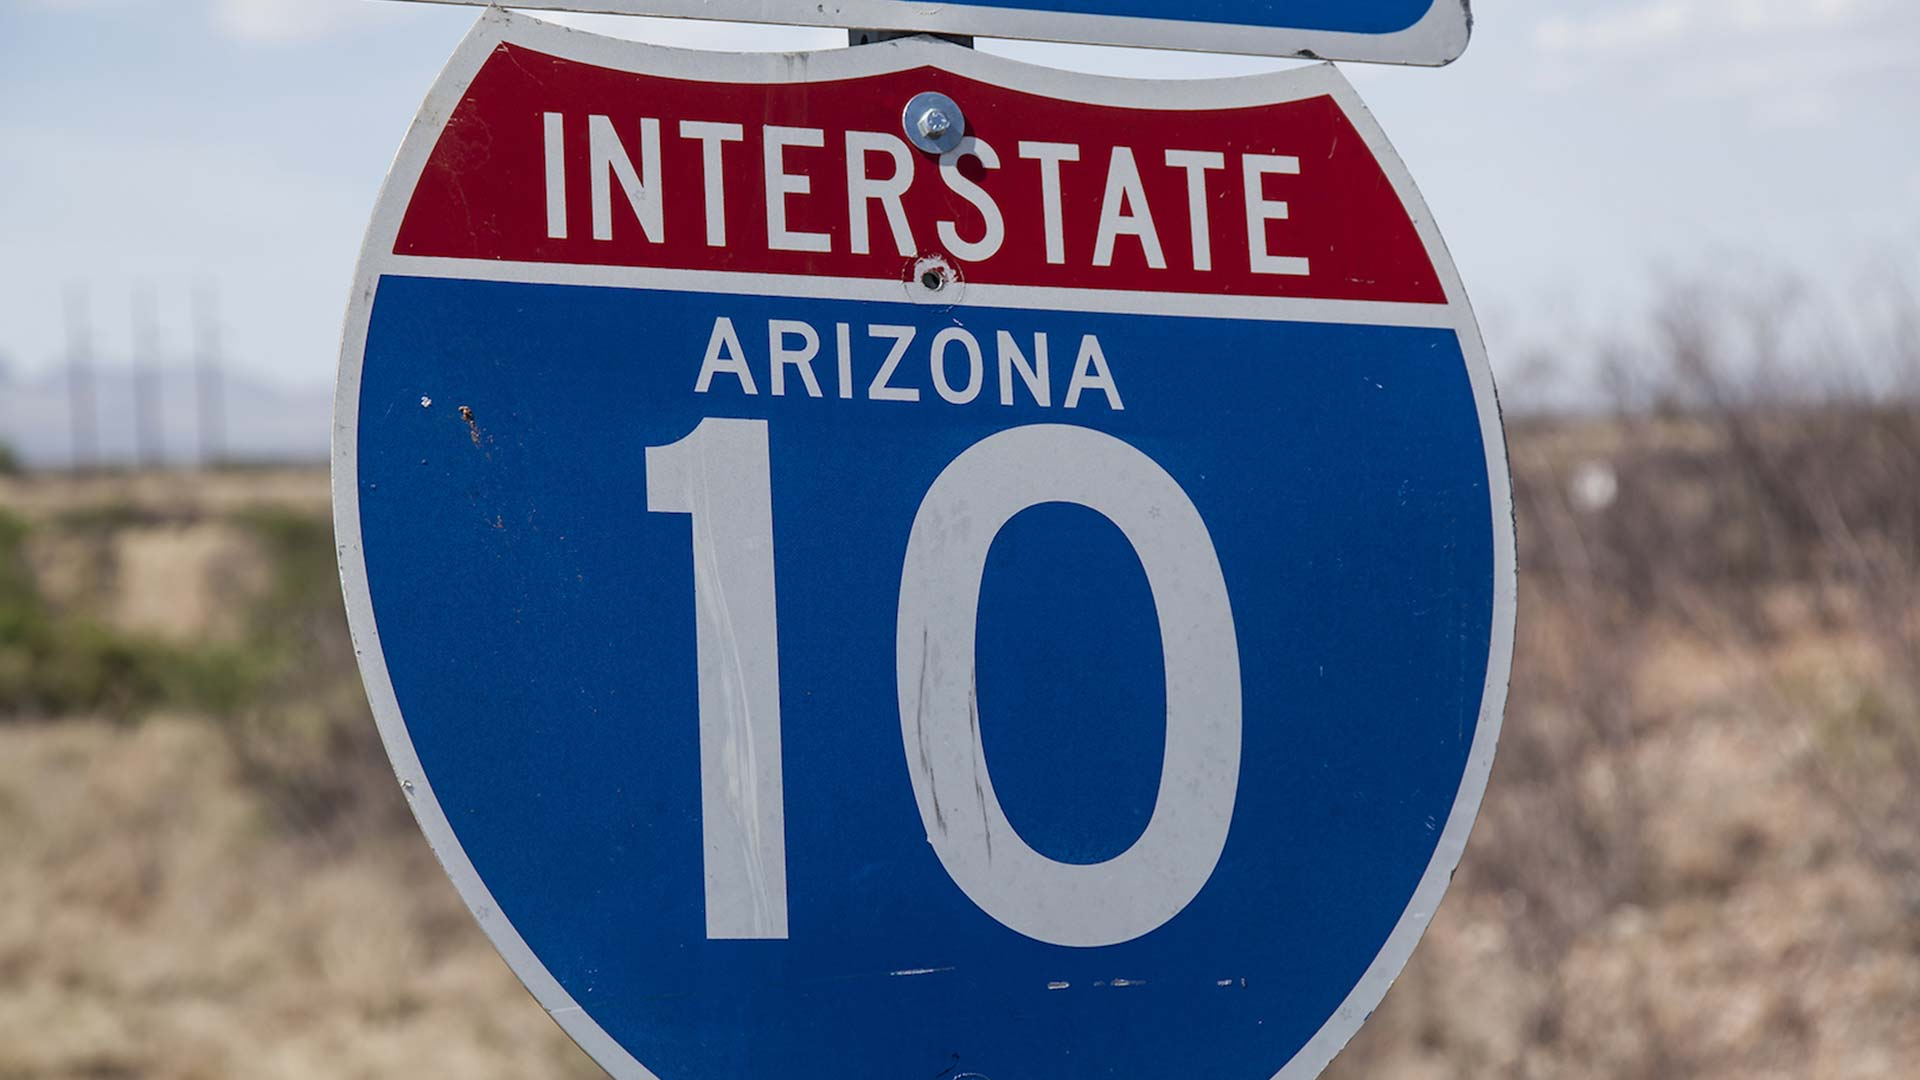 The Sonoran Corridor would link I-10 and I-19 south of the Tucson Airport.